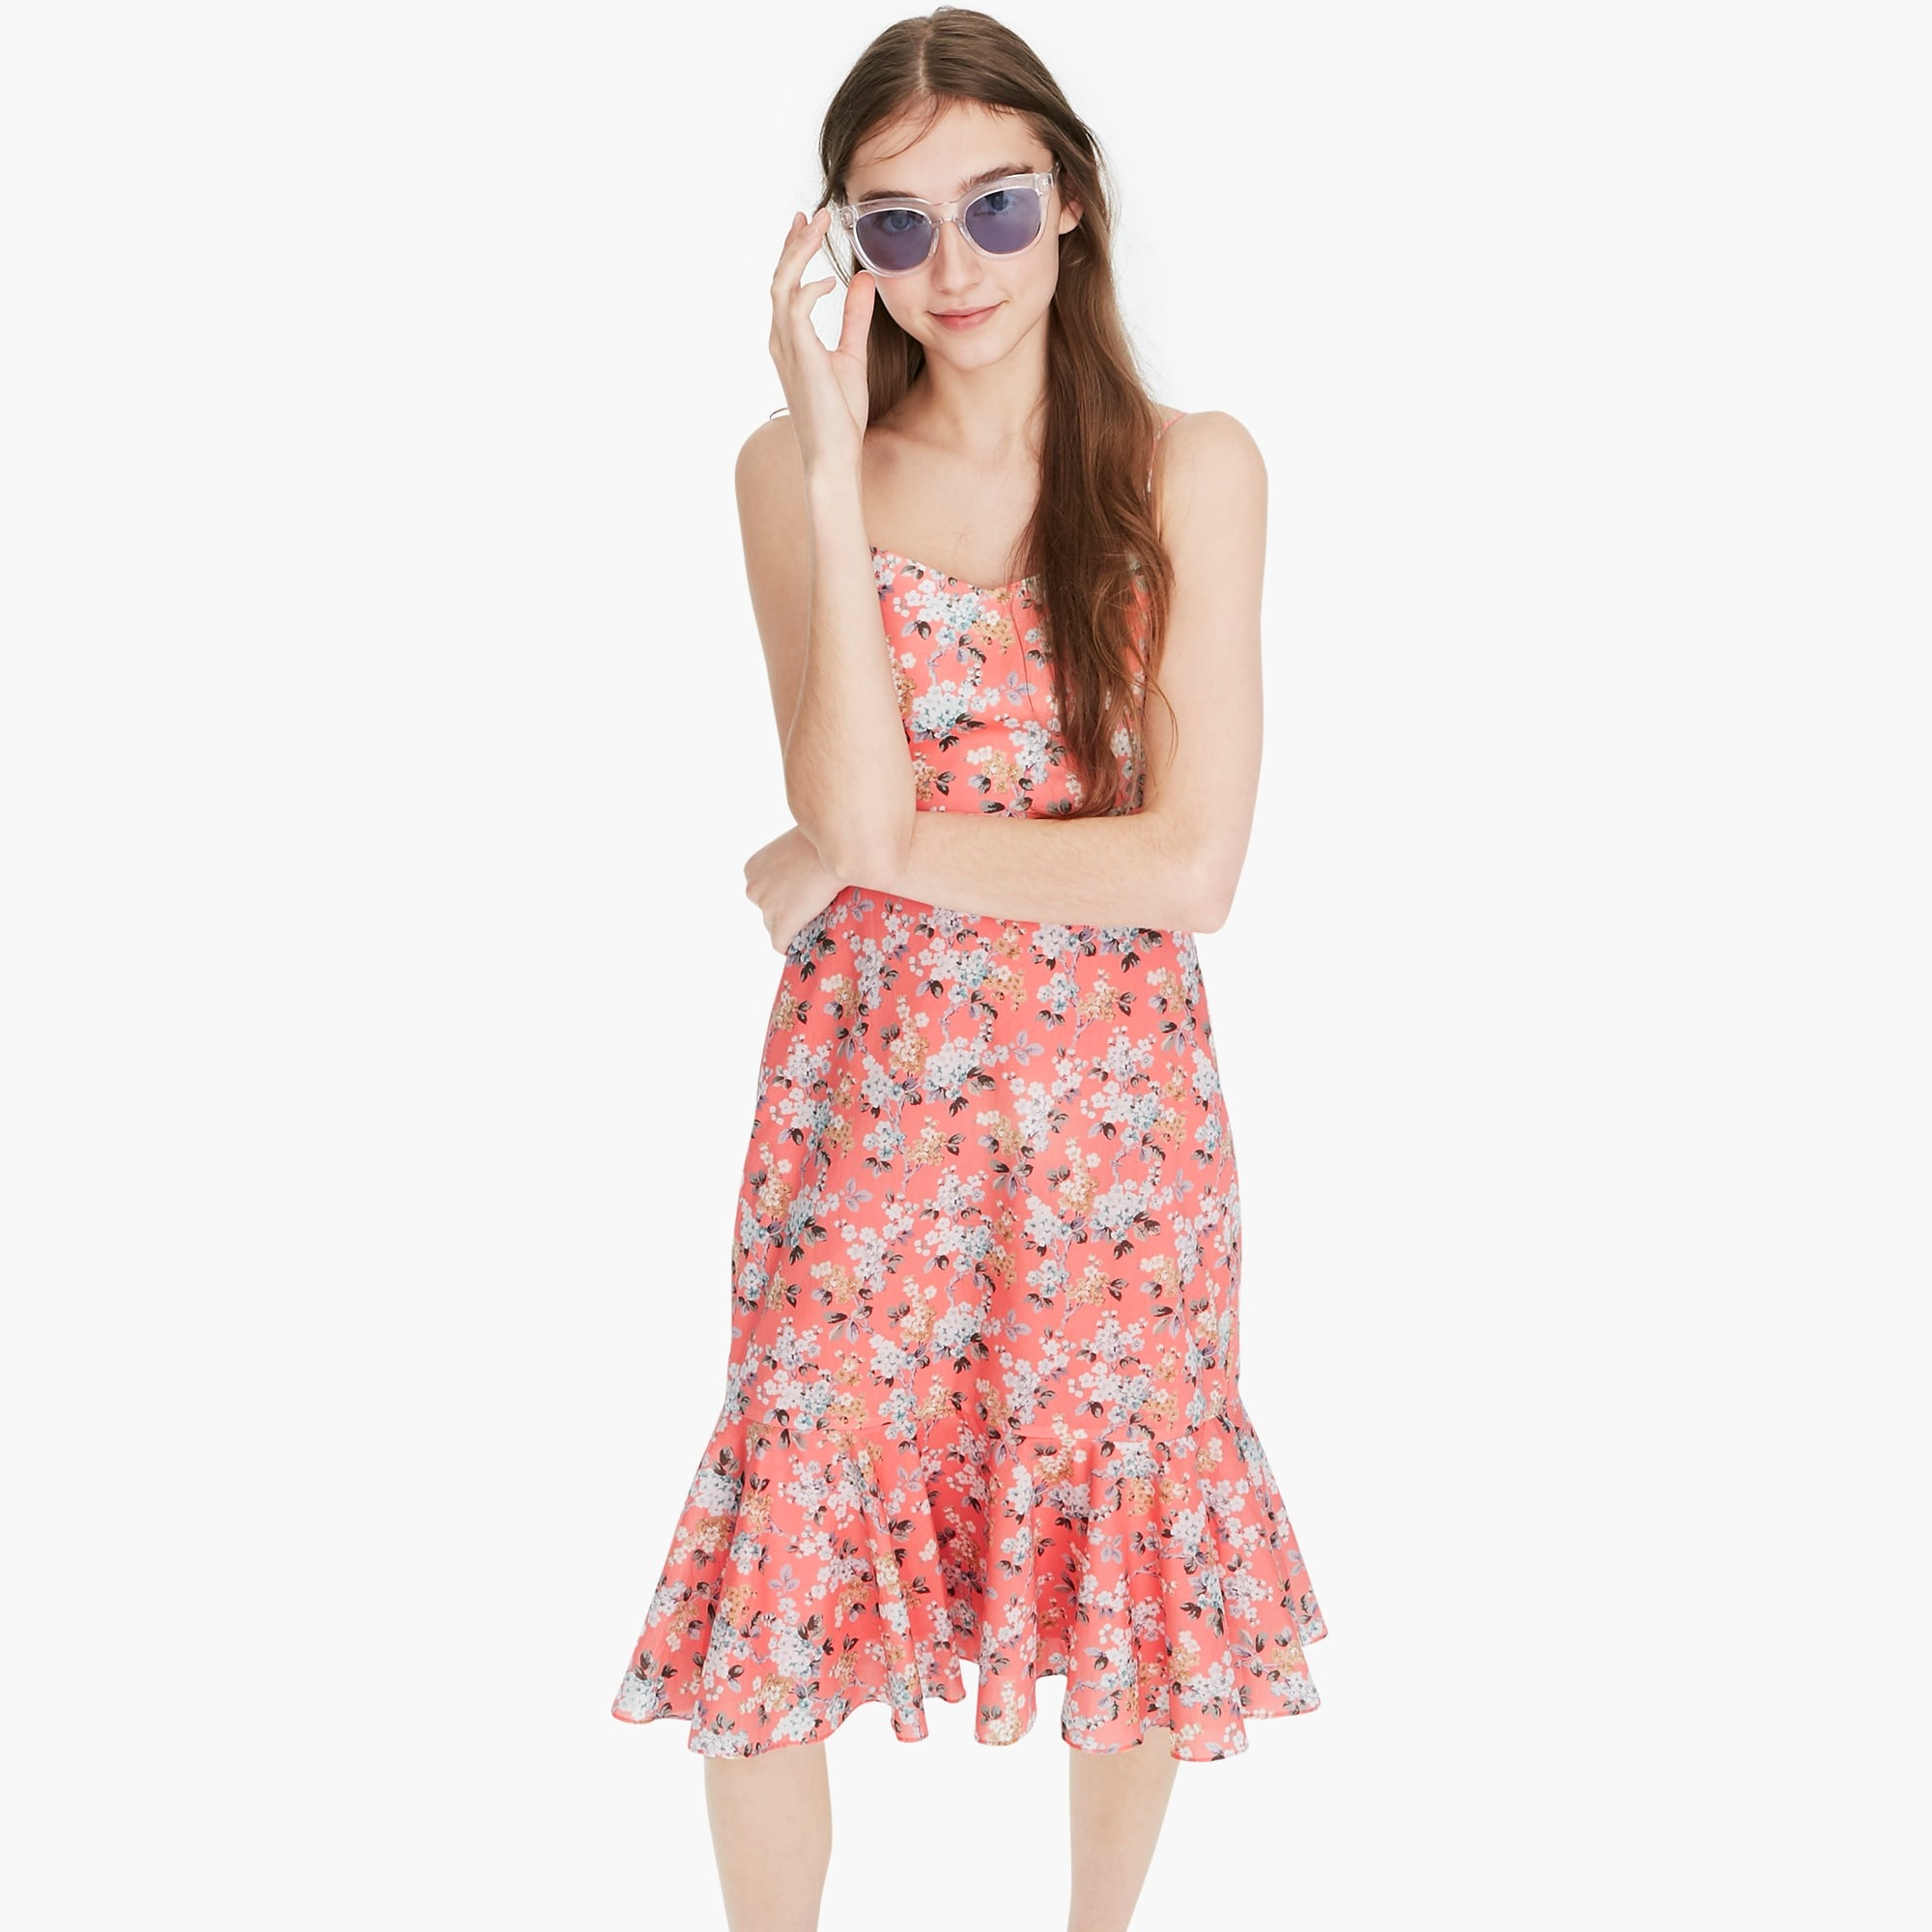 Ruffle-hem midi dress in Liberty® Josephine floral